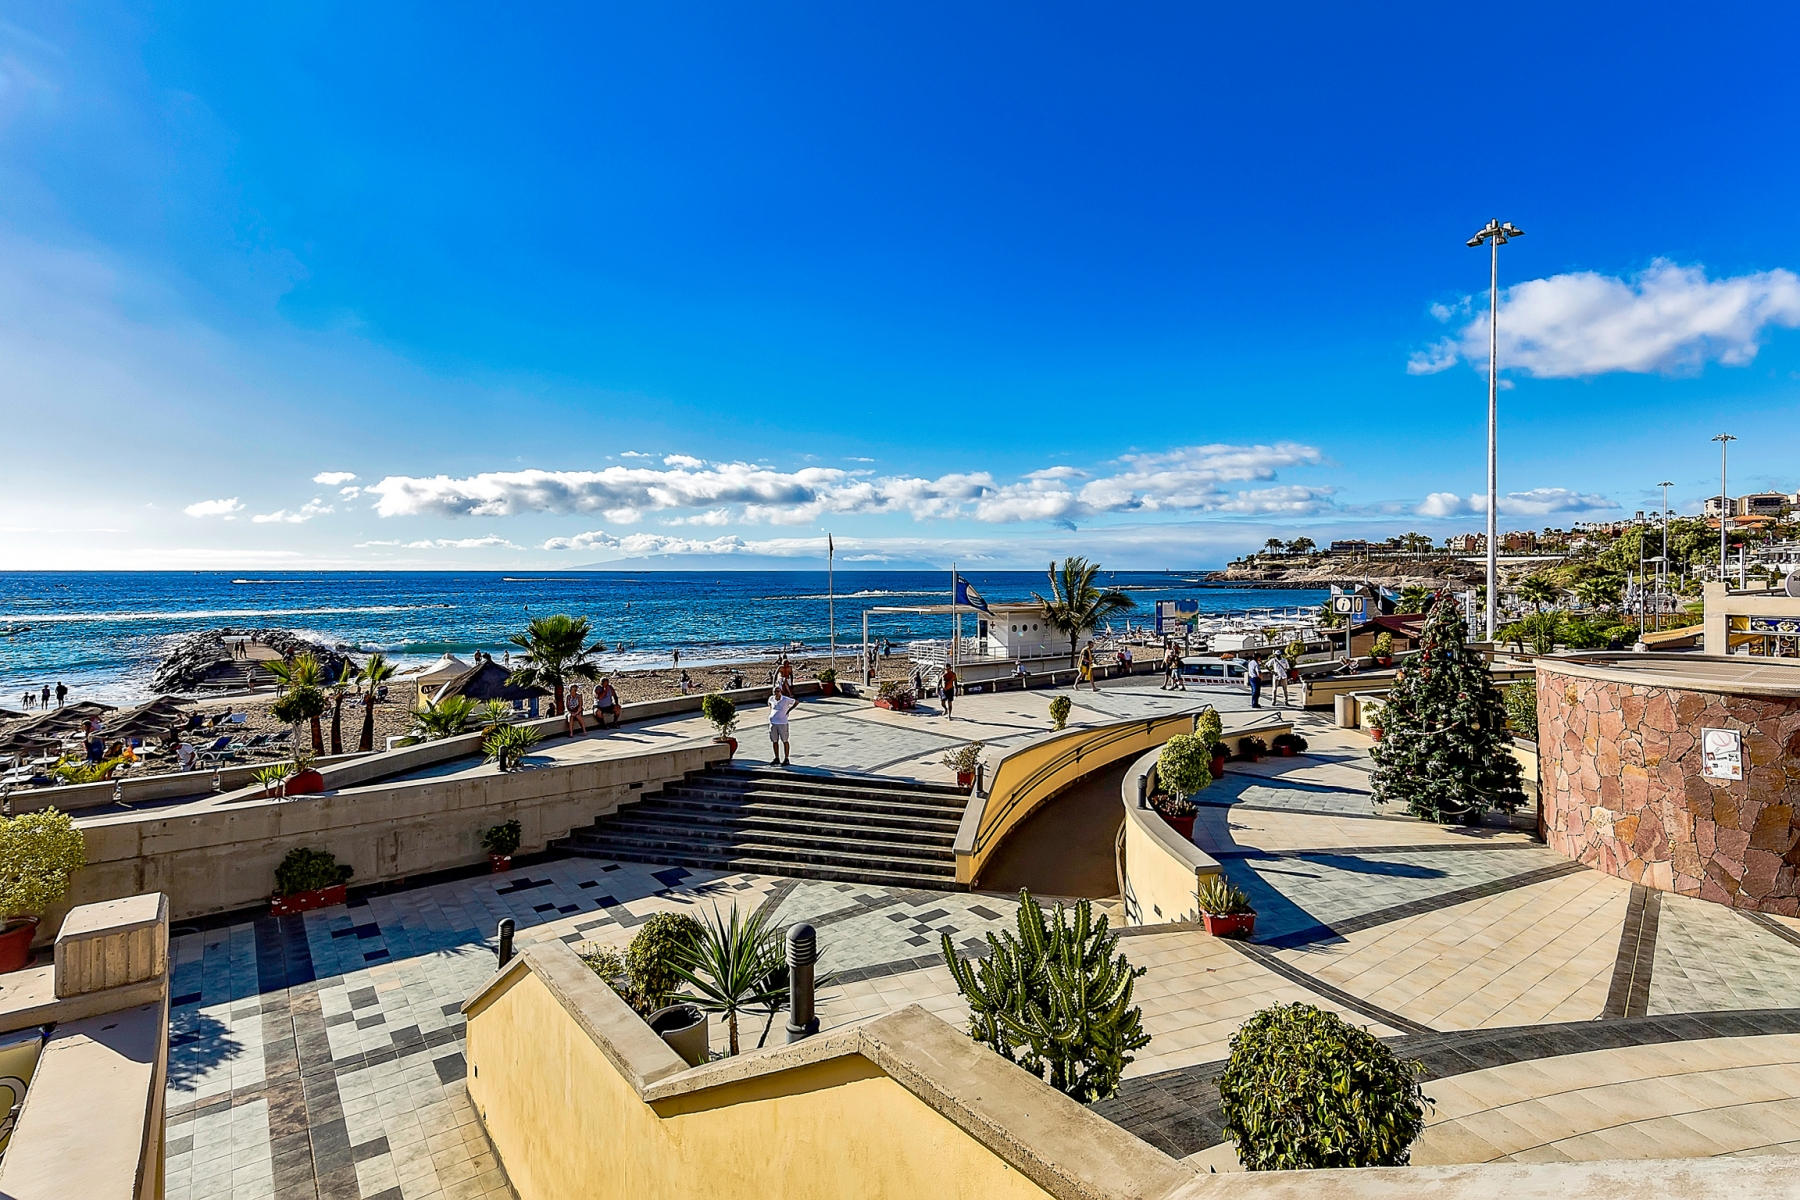 Properties for Sale in Tenerife, Canary Islands, Spain | SylkWayStar Real Estate. 1 bedroom apartment Yucca Park. Image-22551